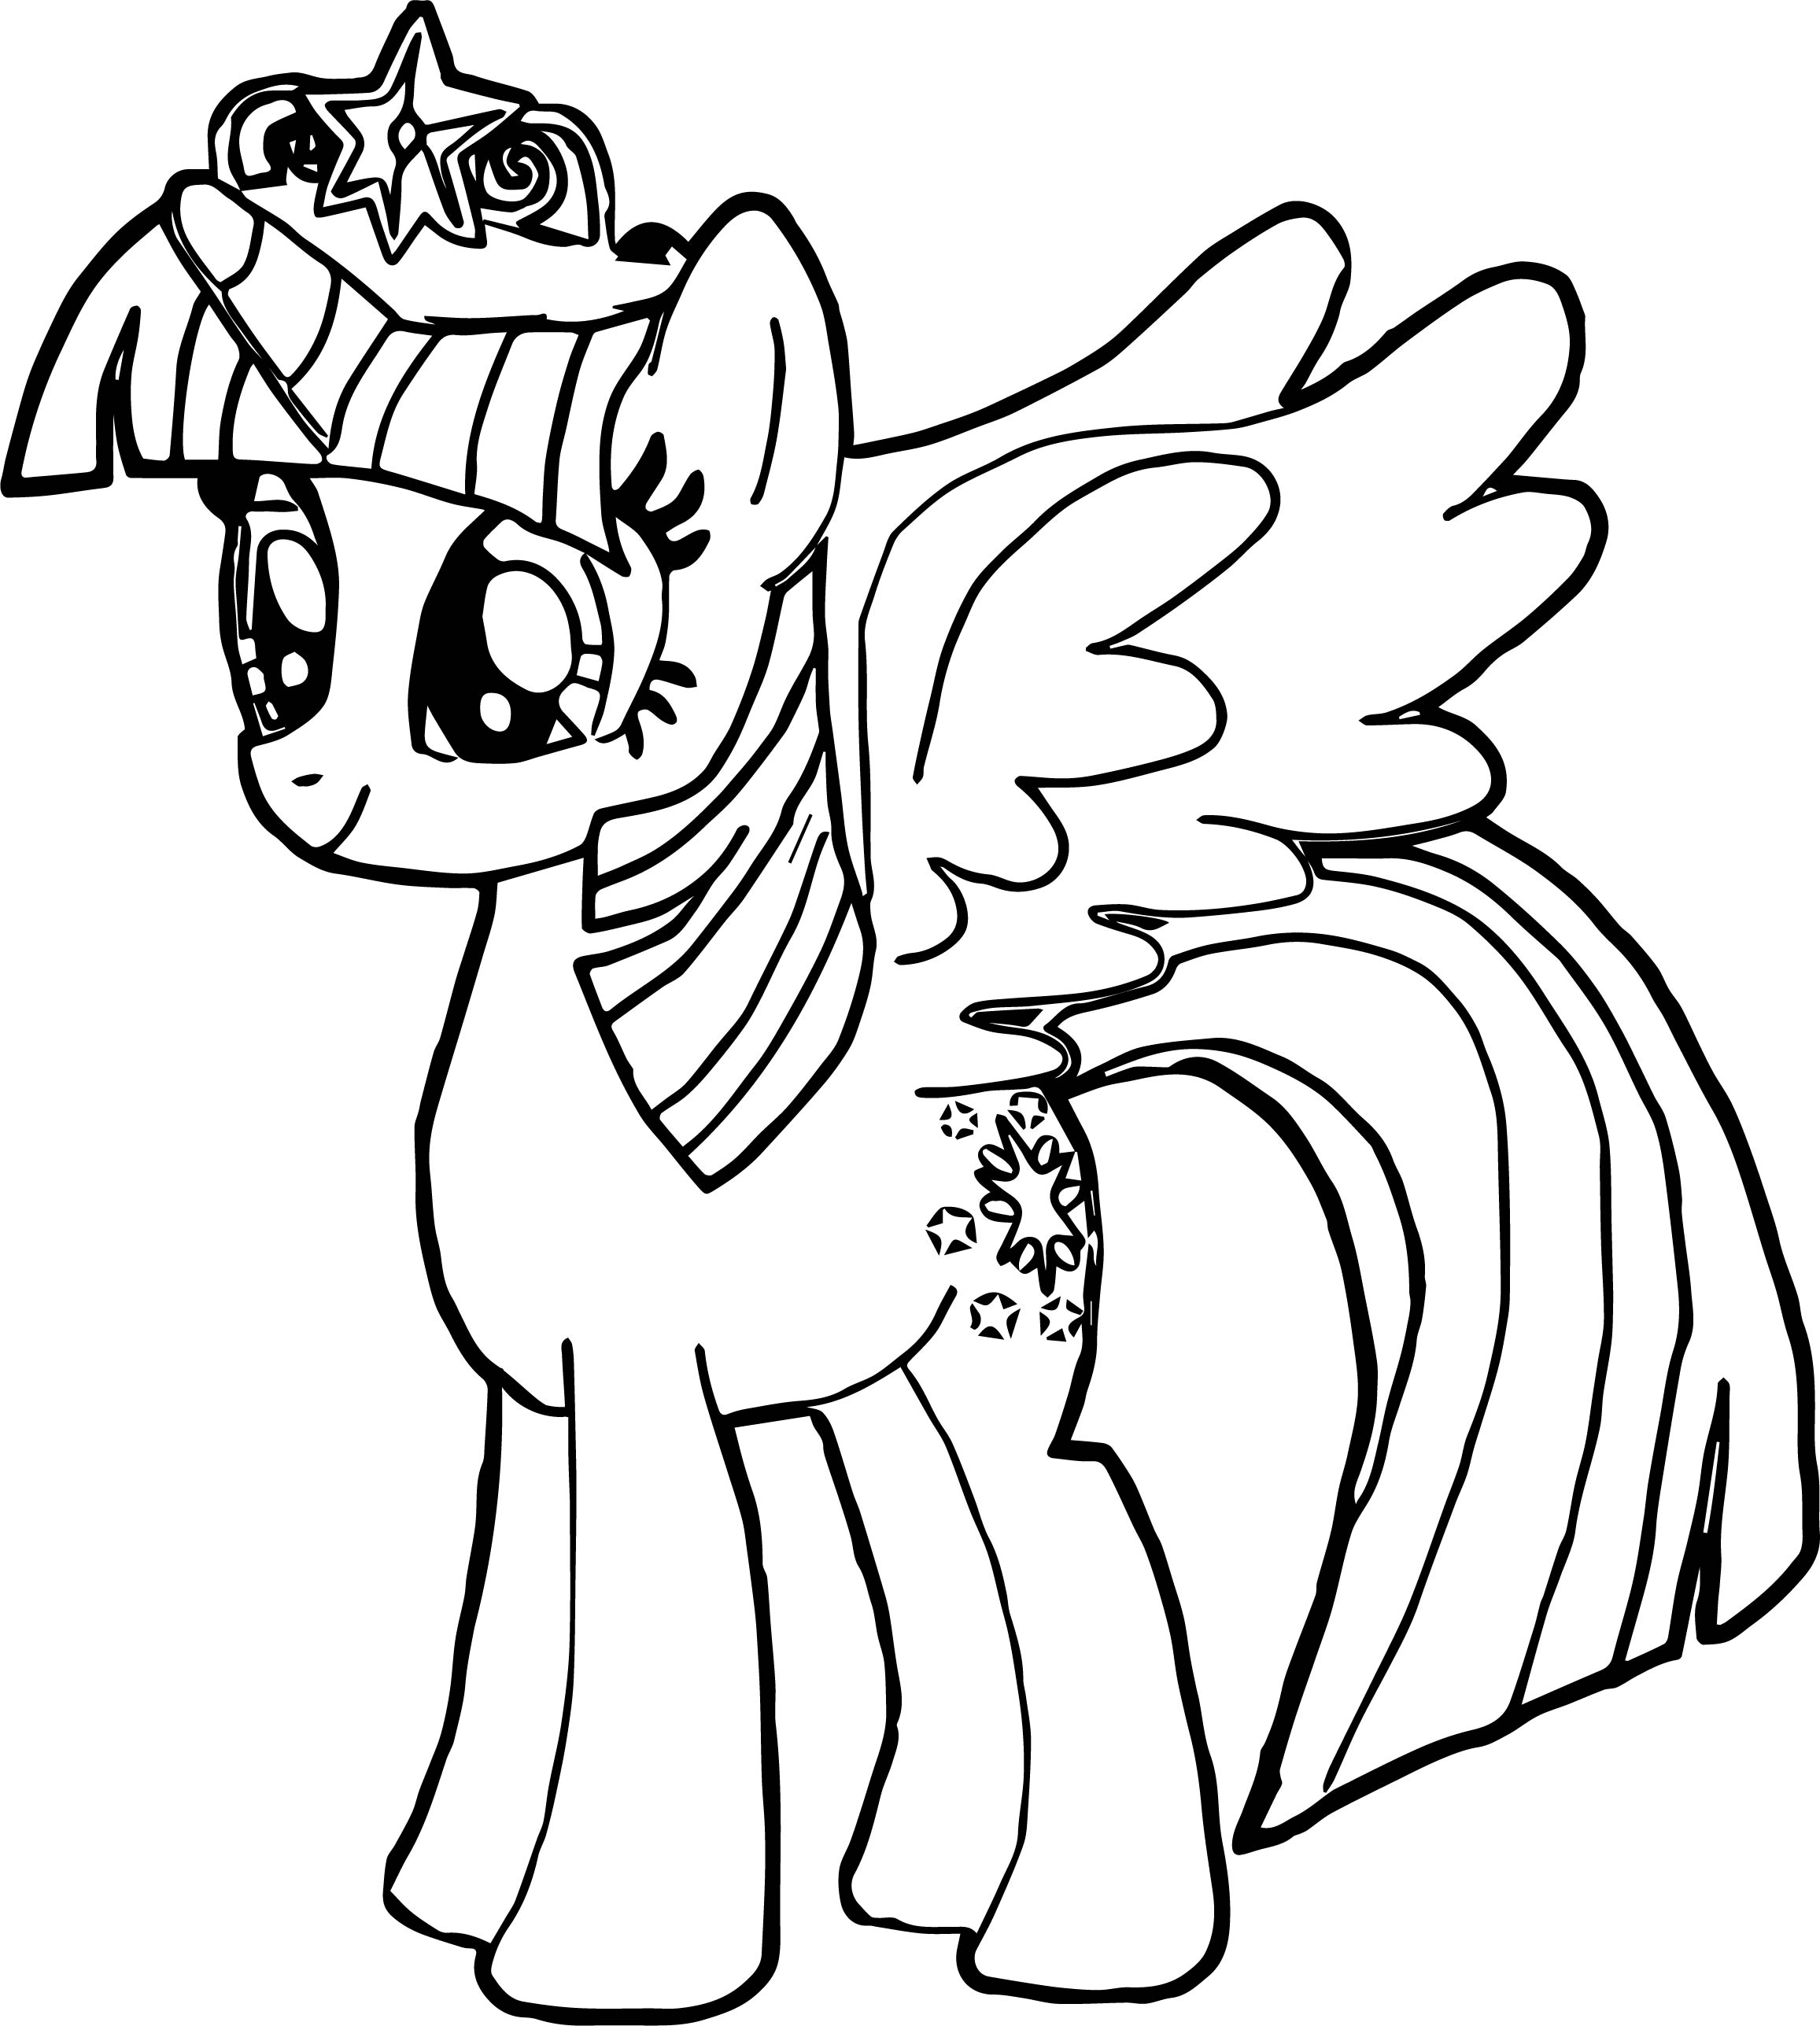 New Princess Twilight Sparkle Coloring Page | Wecoloringpage.com